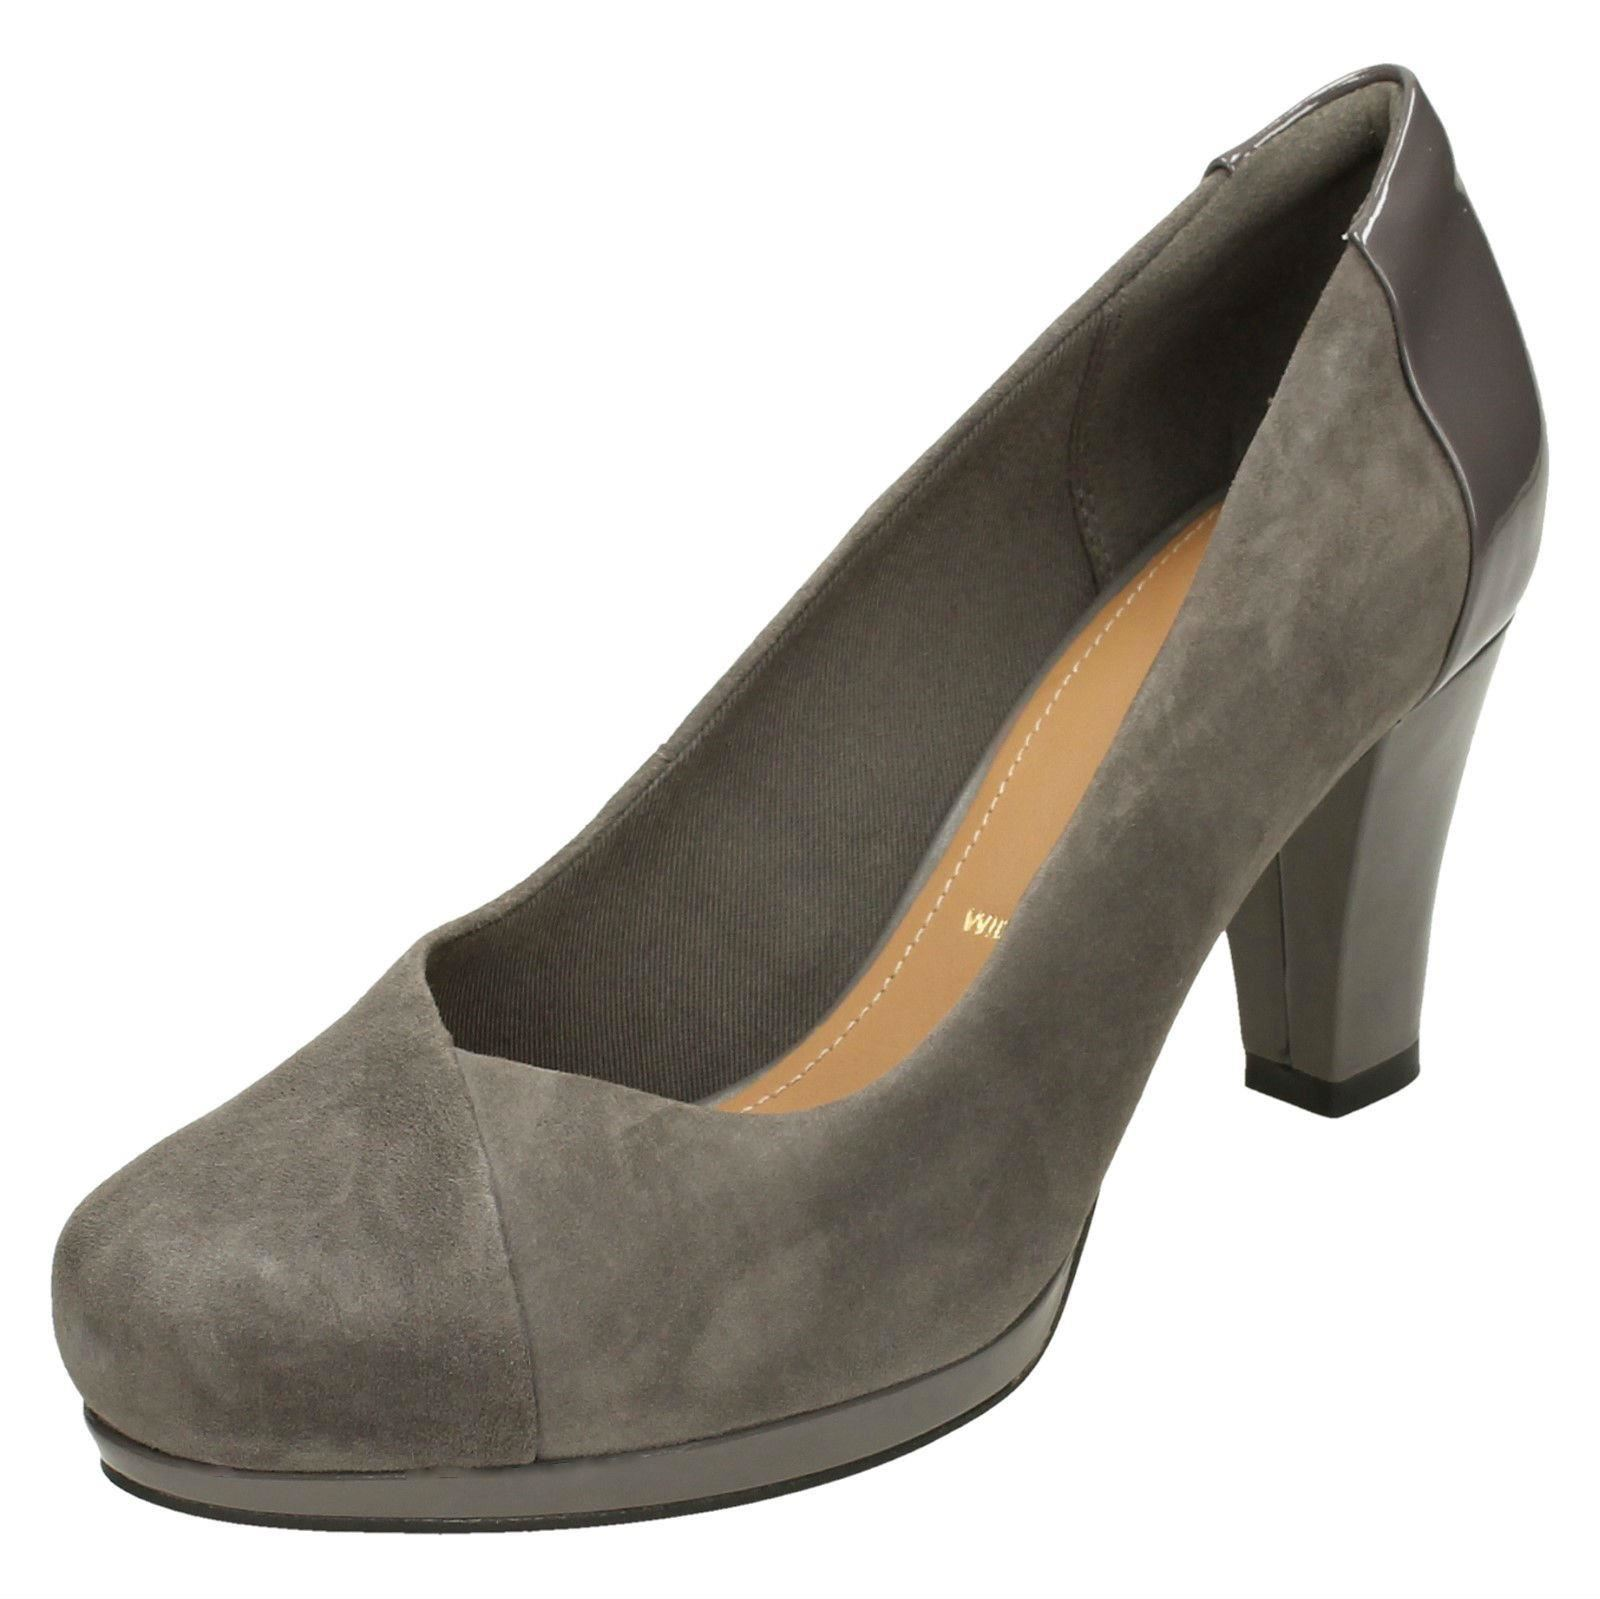 a3b9e2beda4b Ladies Clarks Heeled Court Shoes  chorus Carol  Dark Grey (grey) UK ...